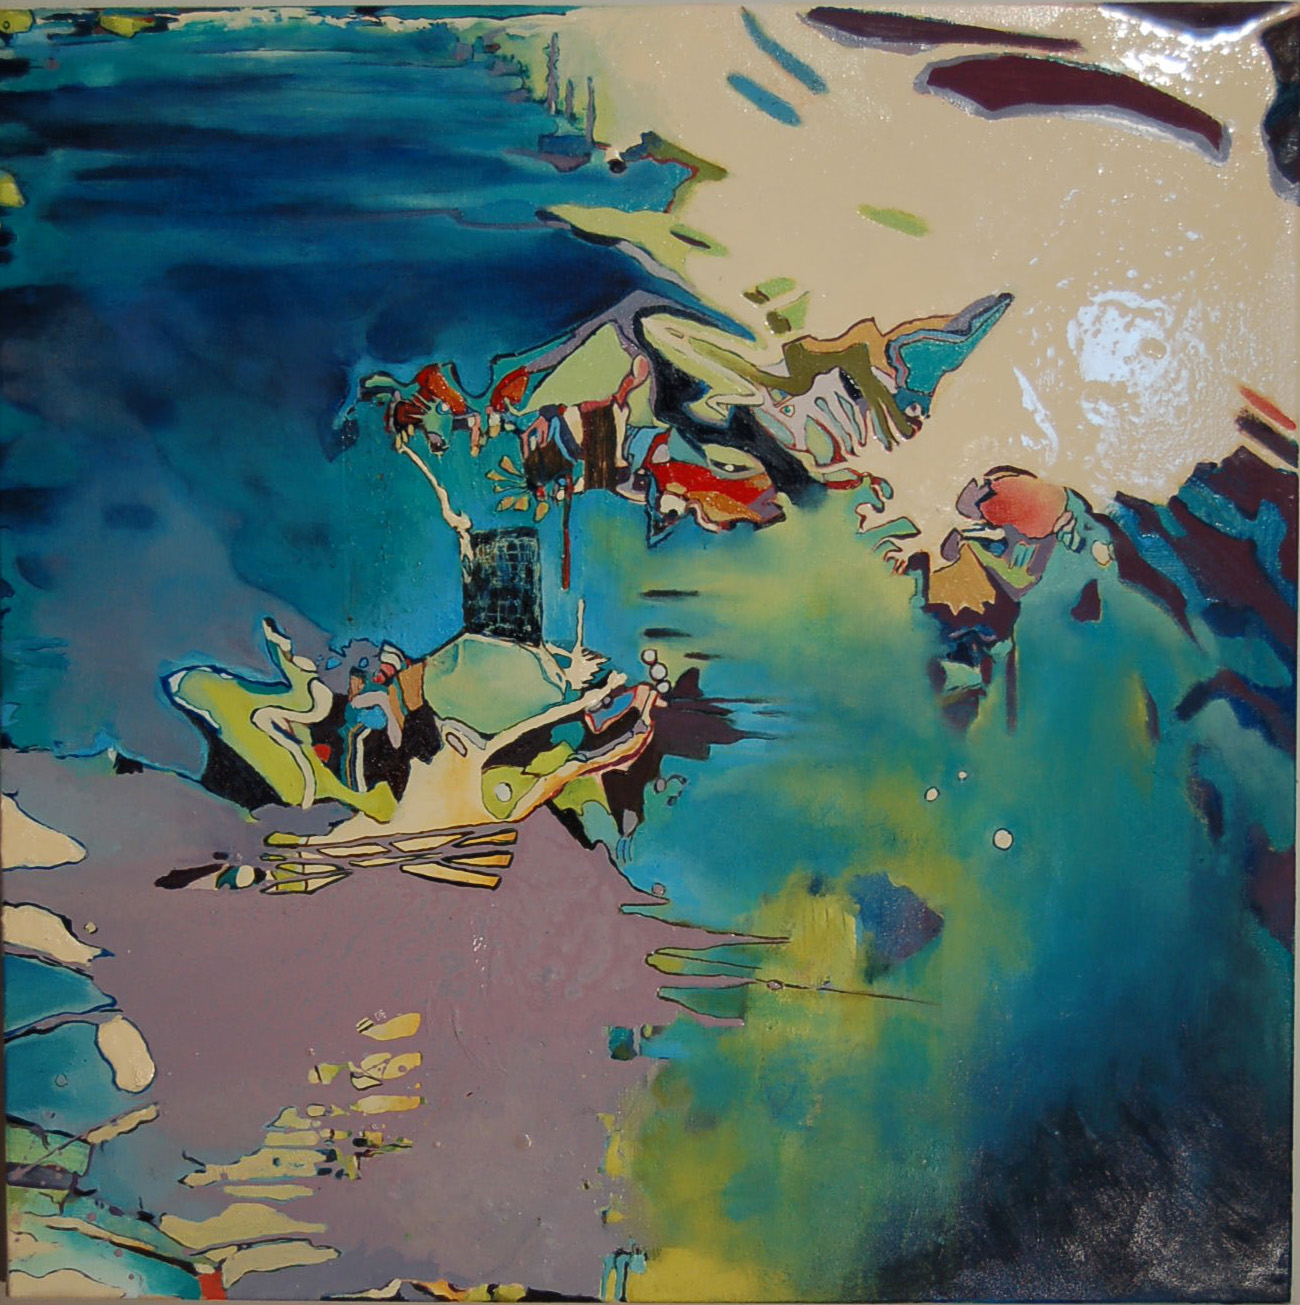 SOLD, Beyond the Horizon, 36 x 36, 2009